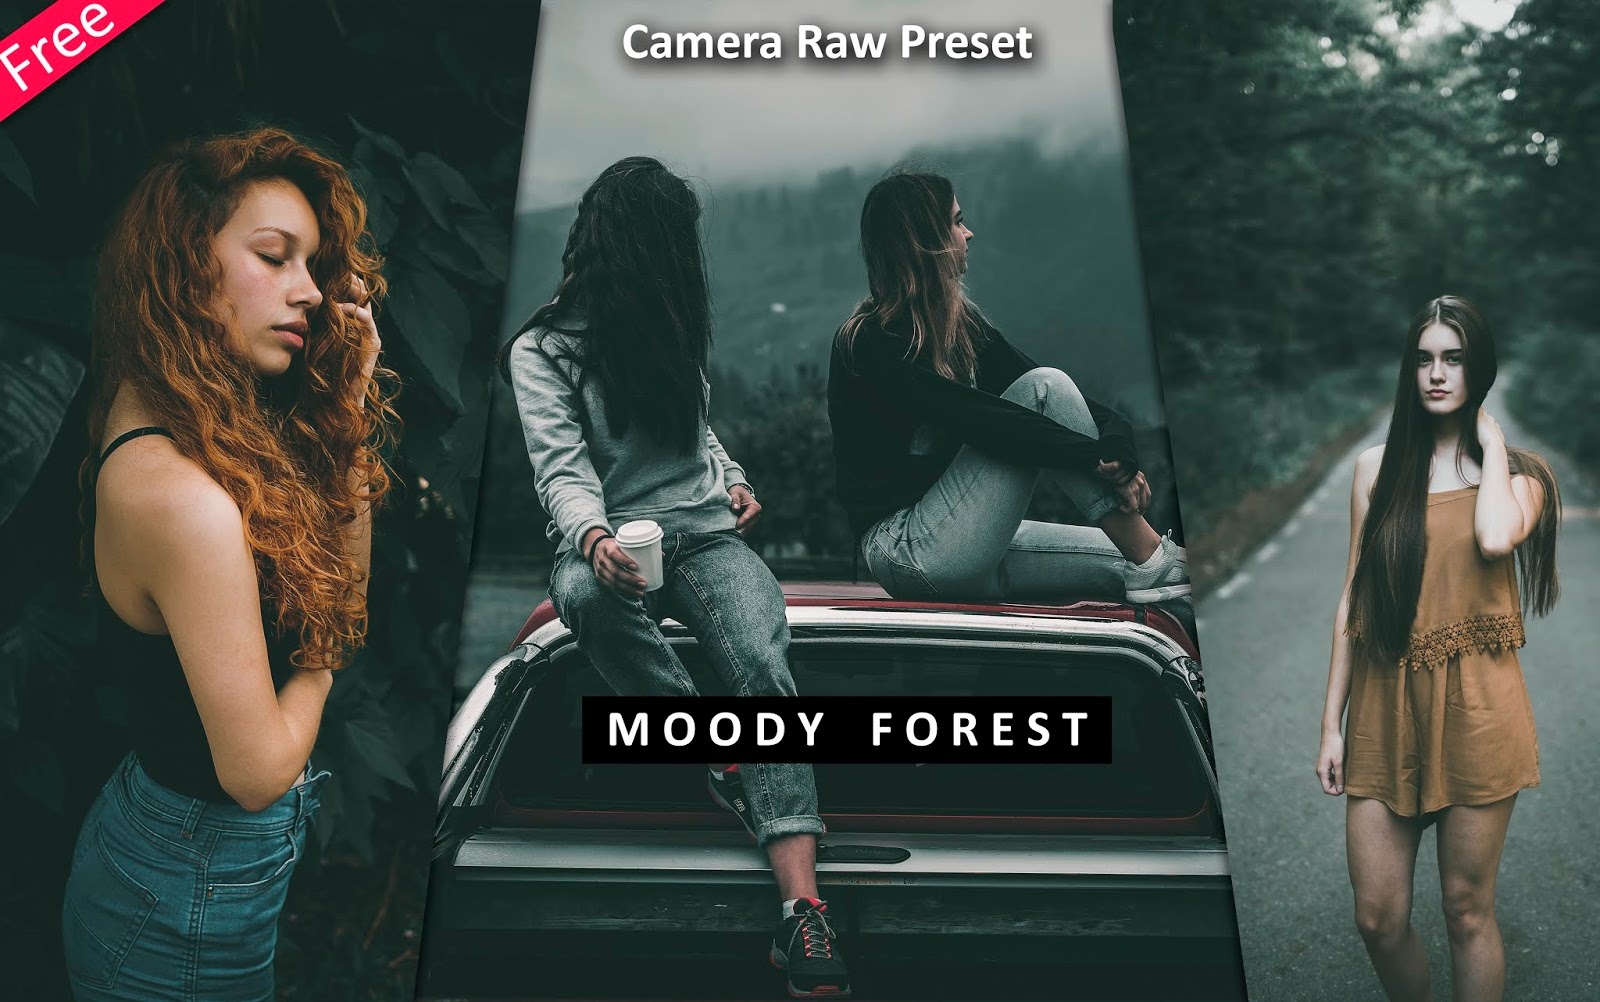 Download Moody Forest Camera Raw Preset for Free | How to Edit Your Photos Like Moody Forest Effect in Photoshop